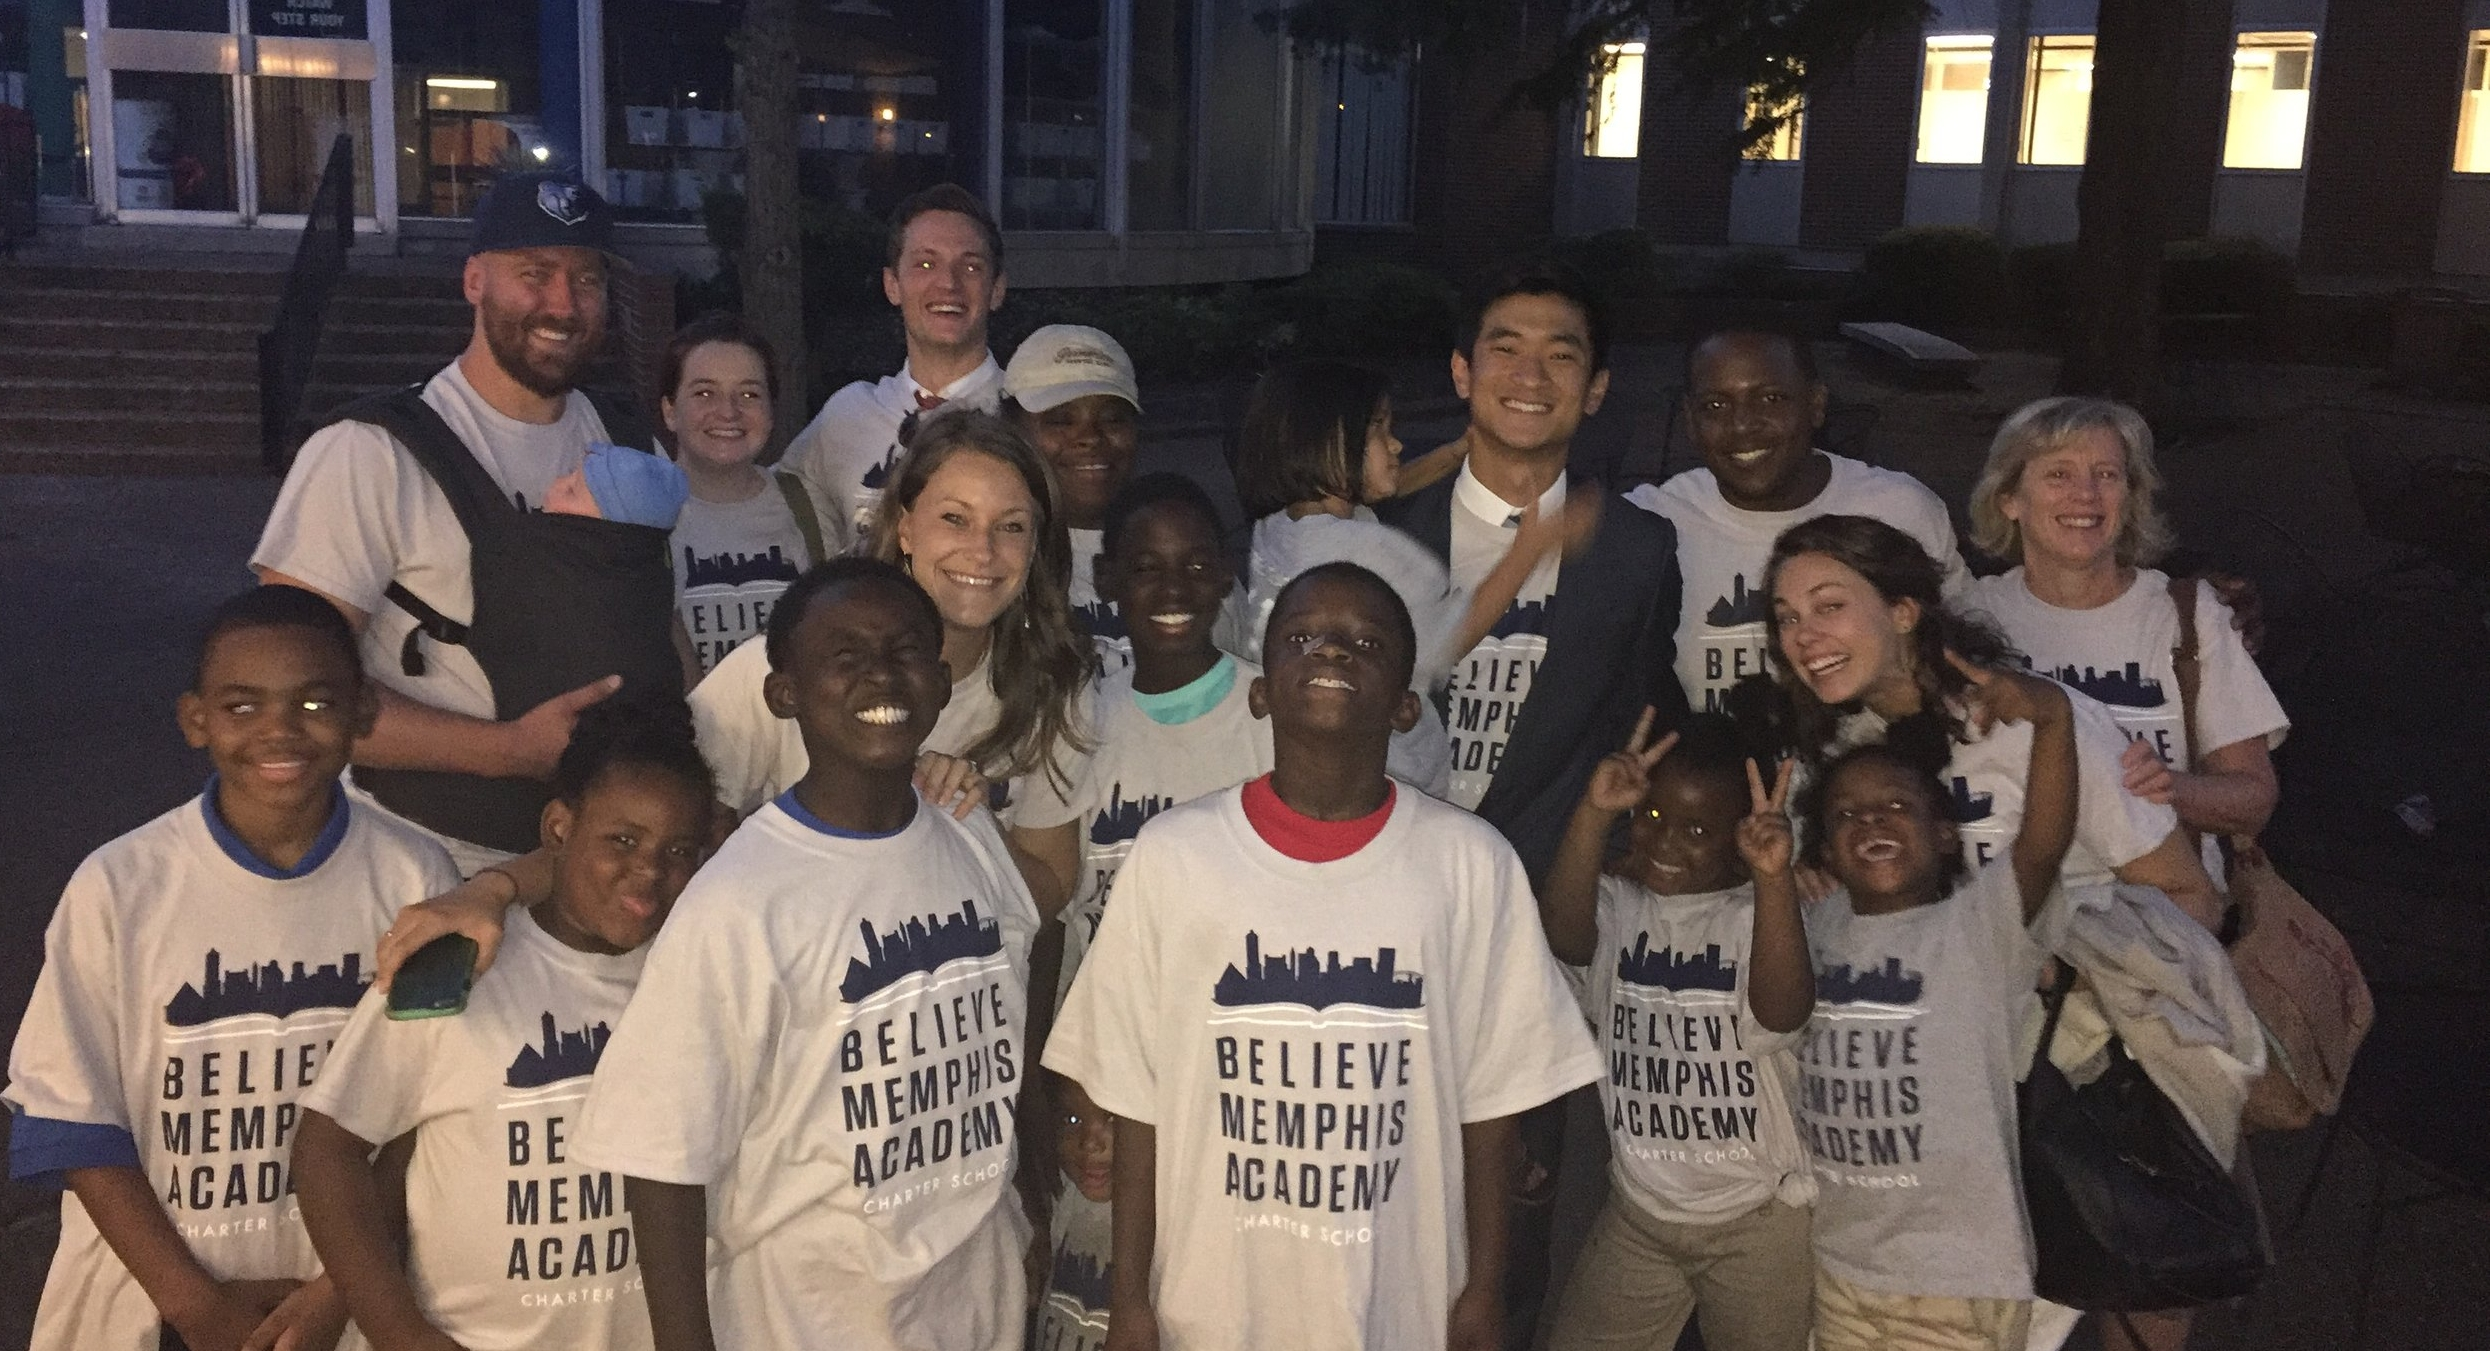 August 22, 2017 - Believe Memphis Academy Charter School's charter application is approved by the Shelby County Board of Education.